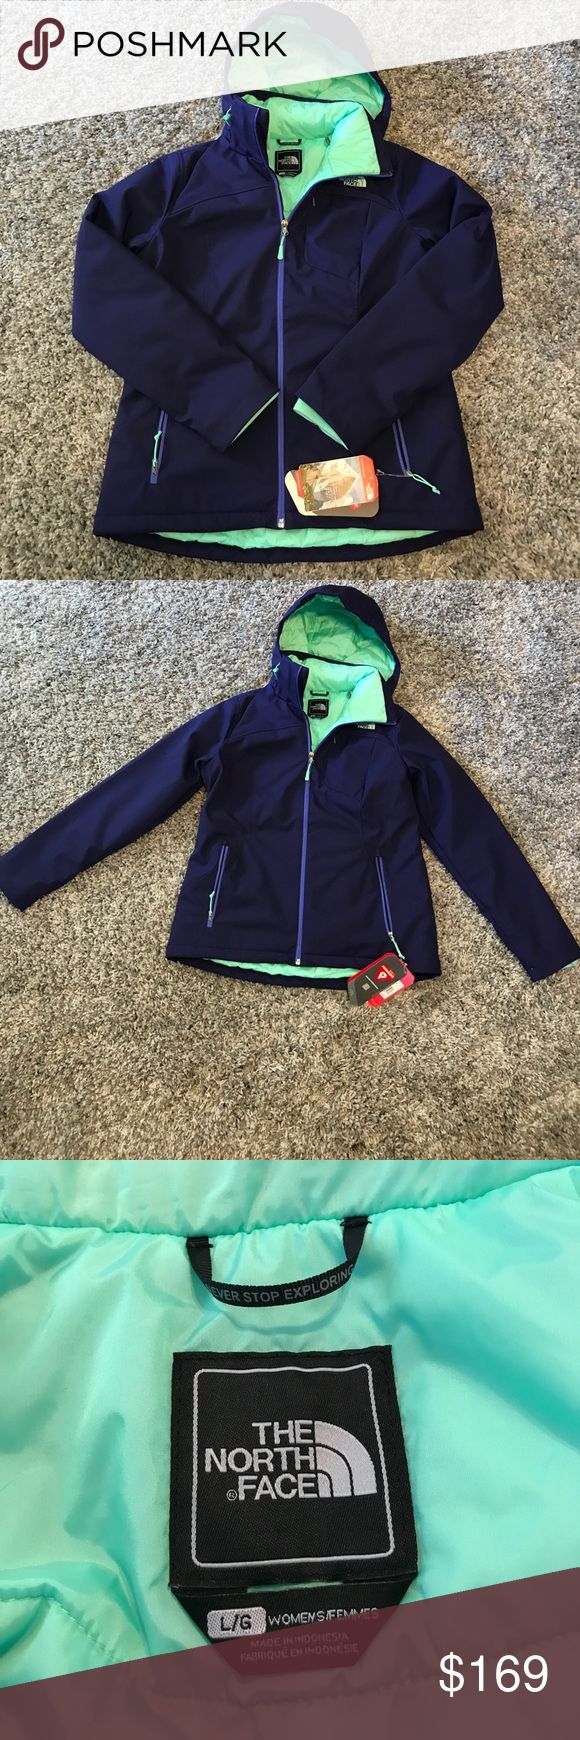 The North Face Apex Elevation Garnet Purple Jacket Super awesome purple and aqua winter jacket! So warm and soft! New with Tags! Reasonable offers accepted! Bundle for a private discount! The North Face Jackets & Coats